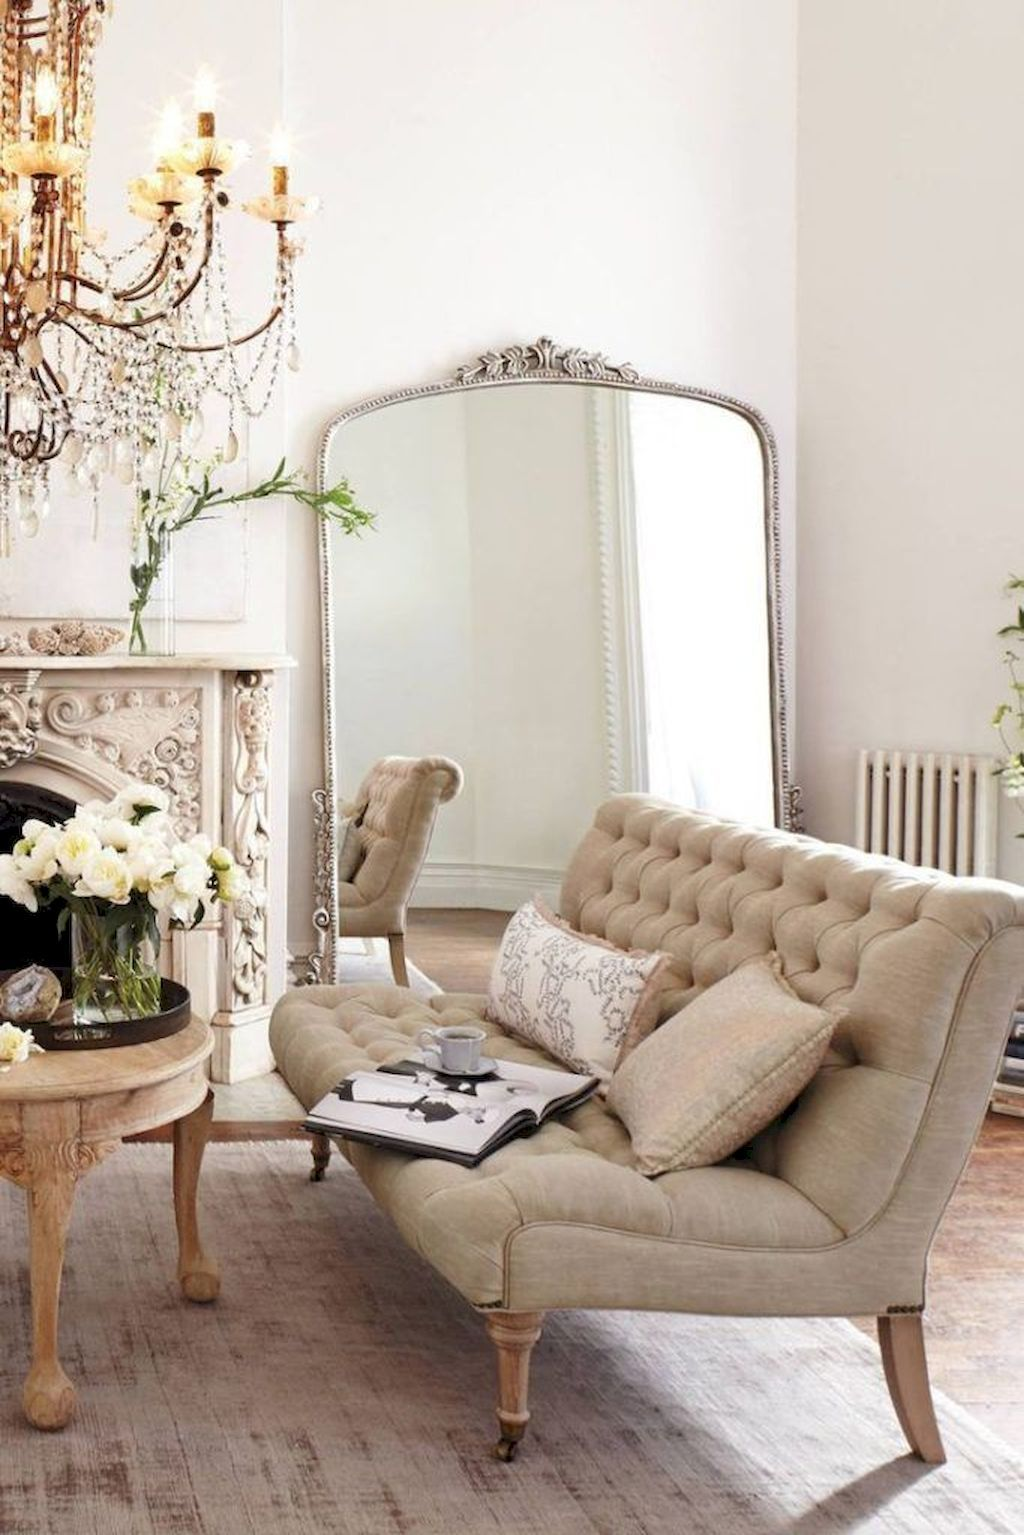 90 Stunning French Country Living Room Decor Ideas | French country ...